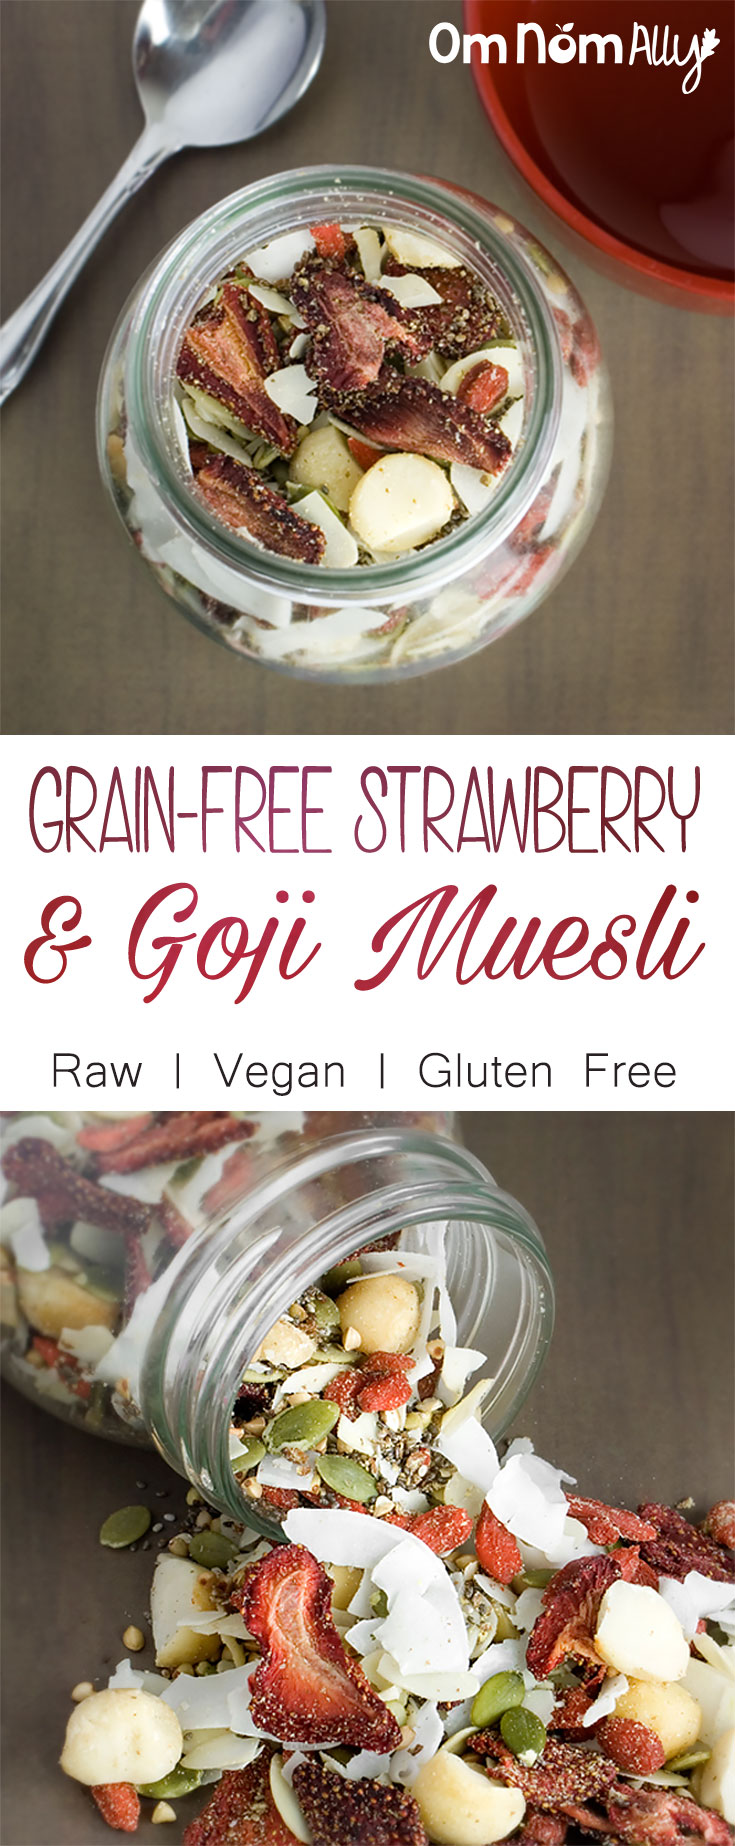 Grain-Free Strawberry & Goji Muesli - Raw, Vegan and Gluten Free